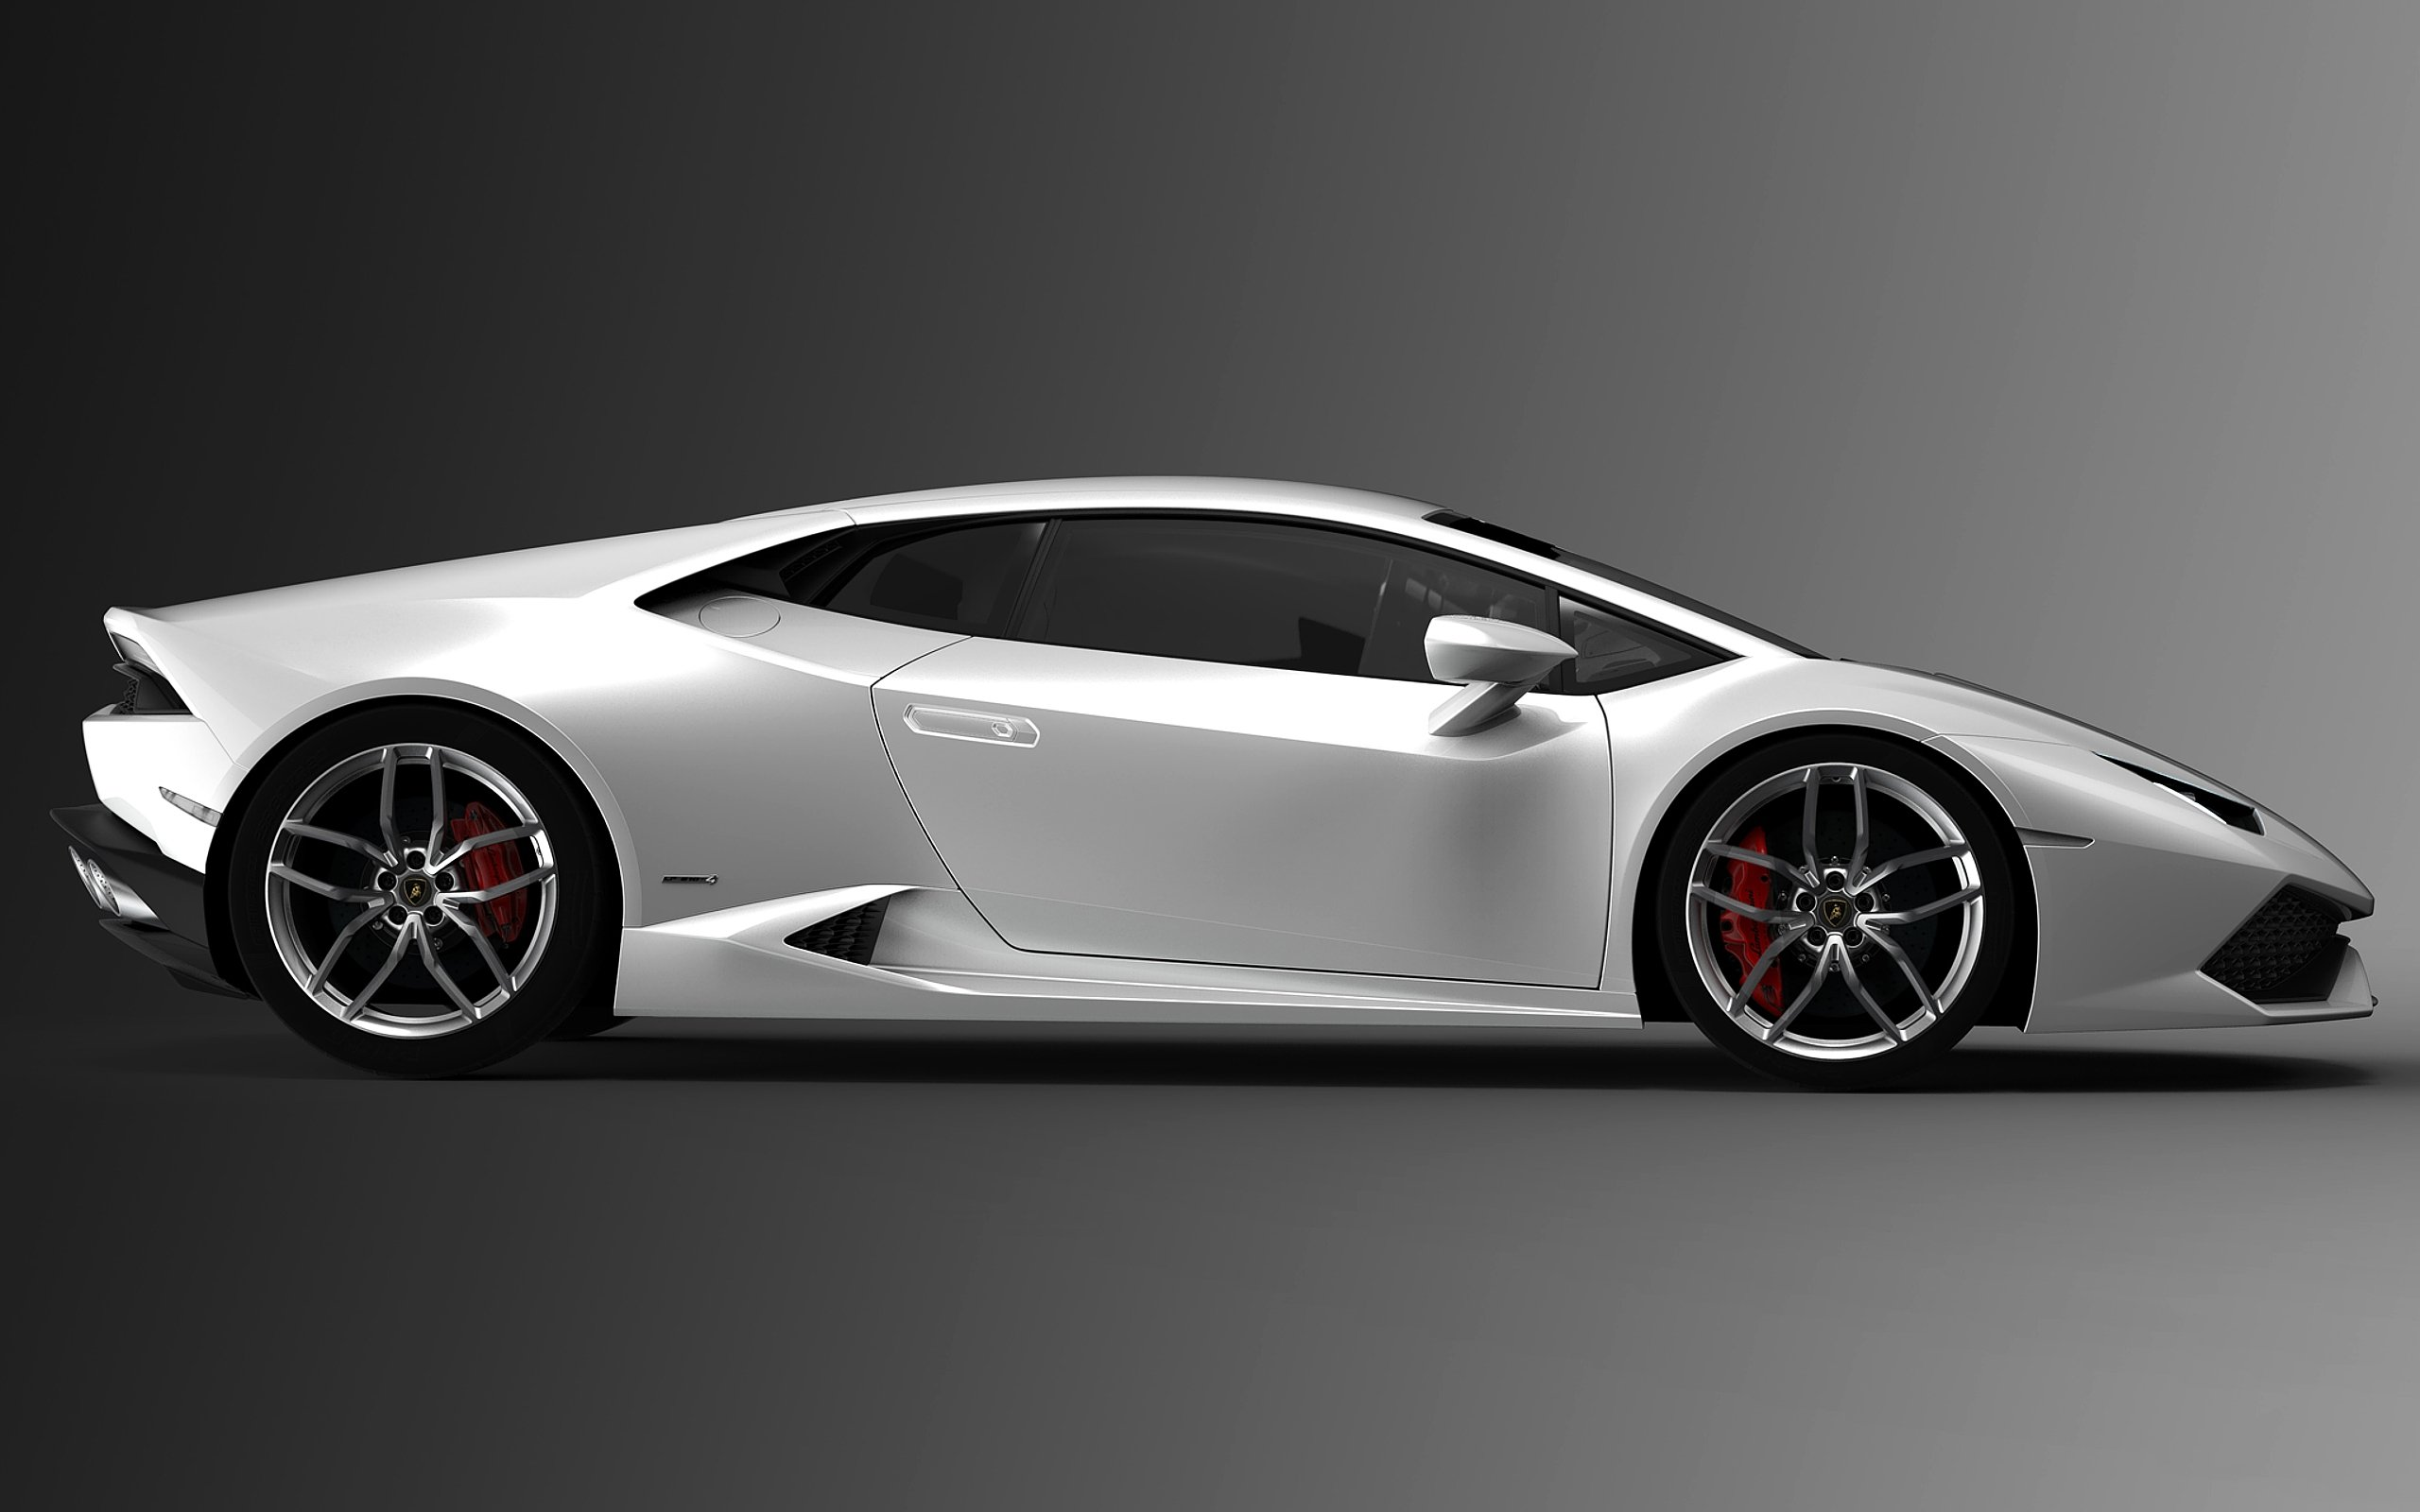 Car Lamborghini on HD wallpapers for desktopNew Lamborghini Huracan 2560x1600